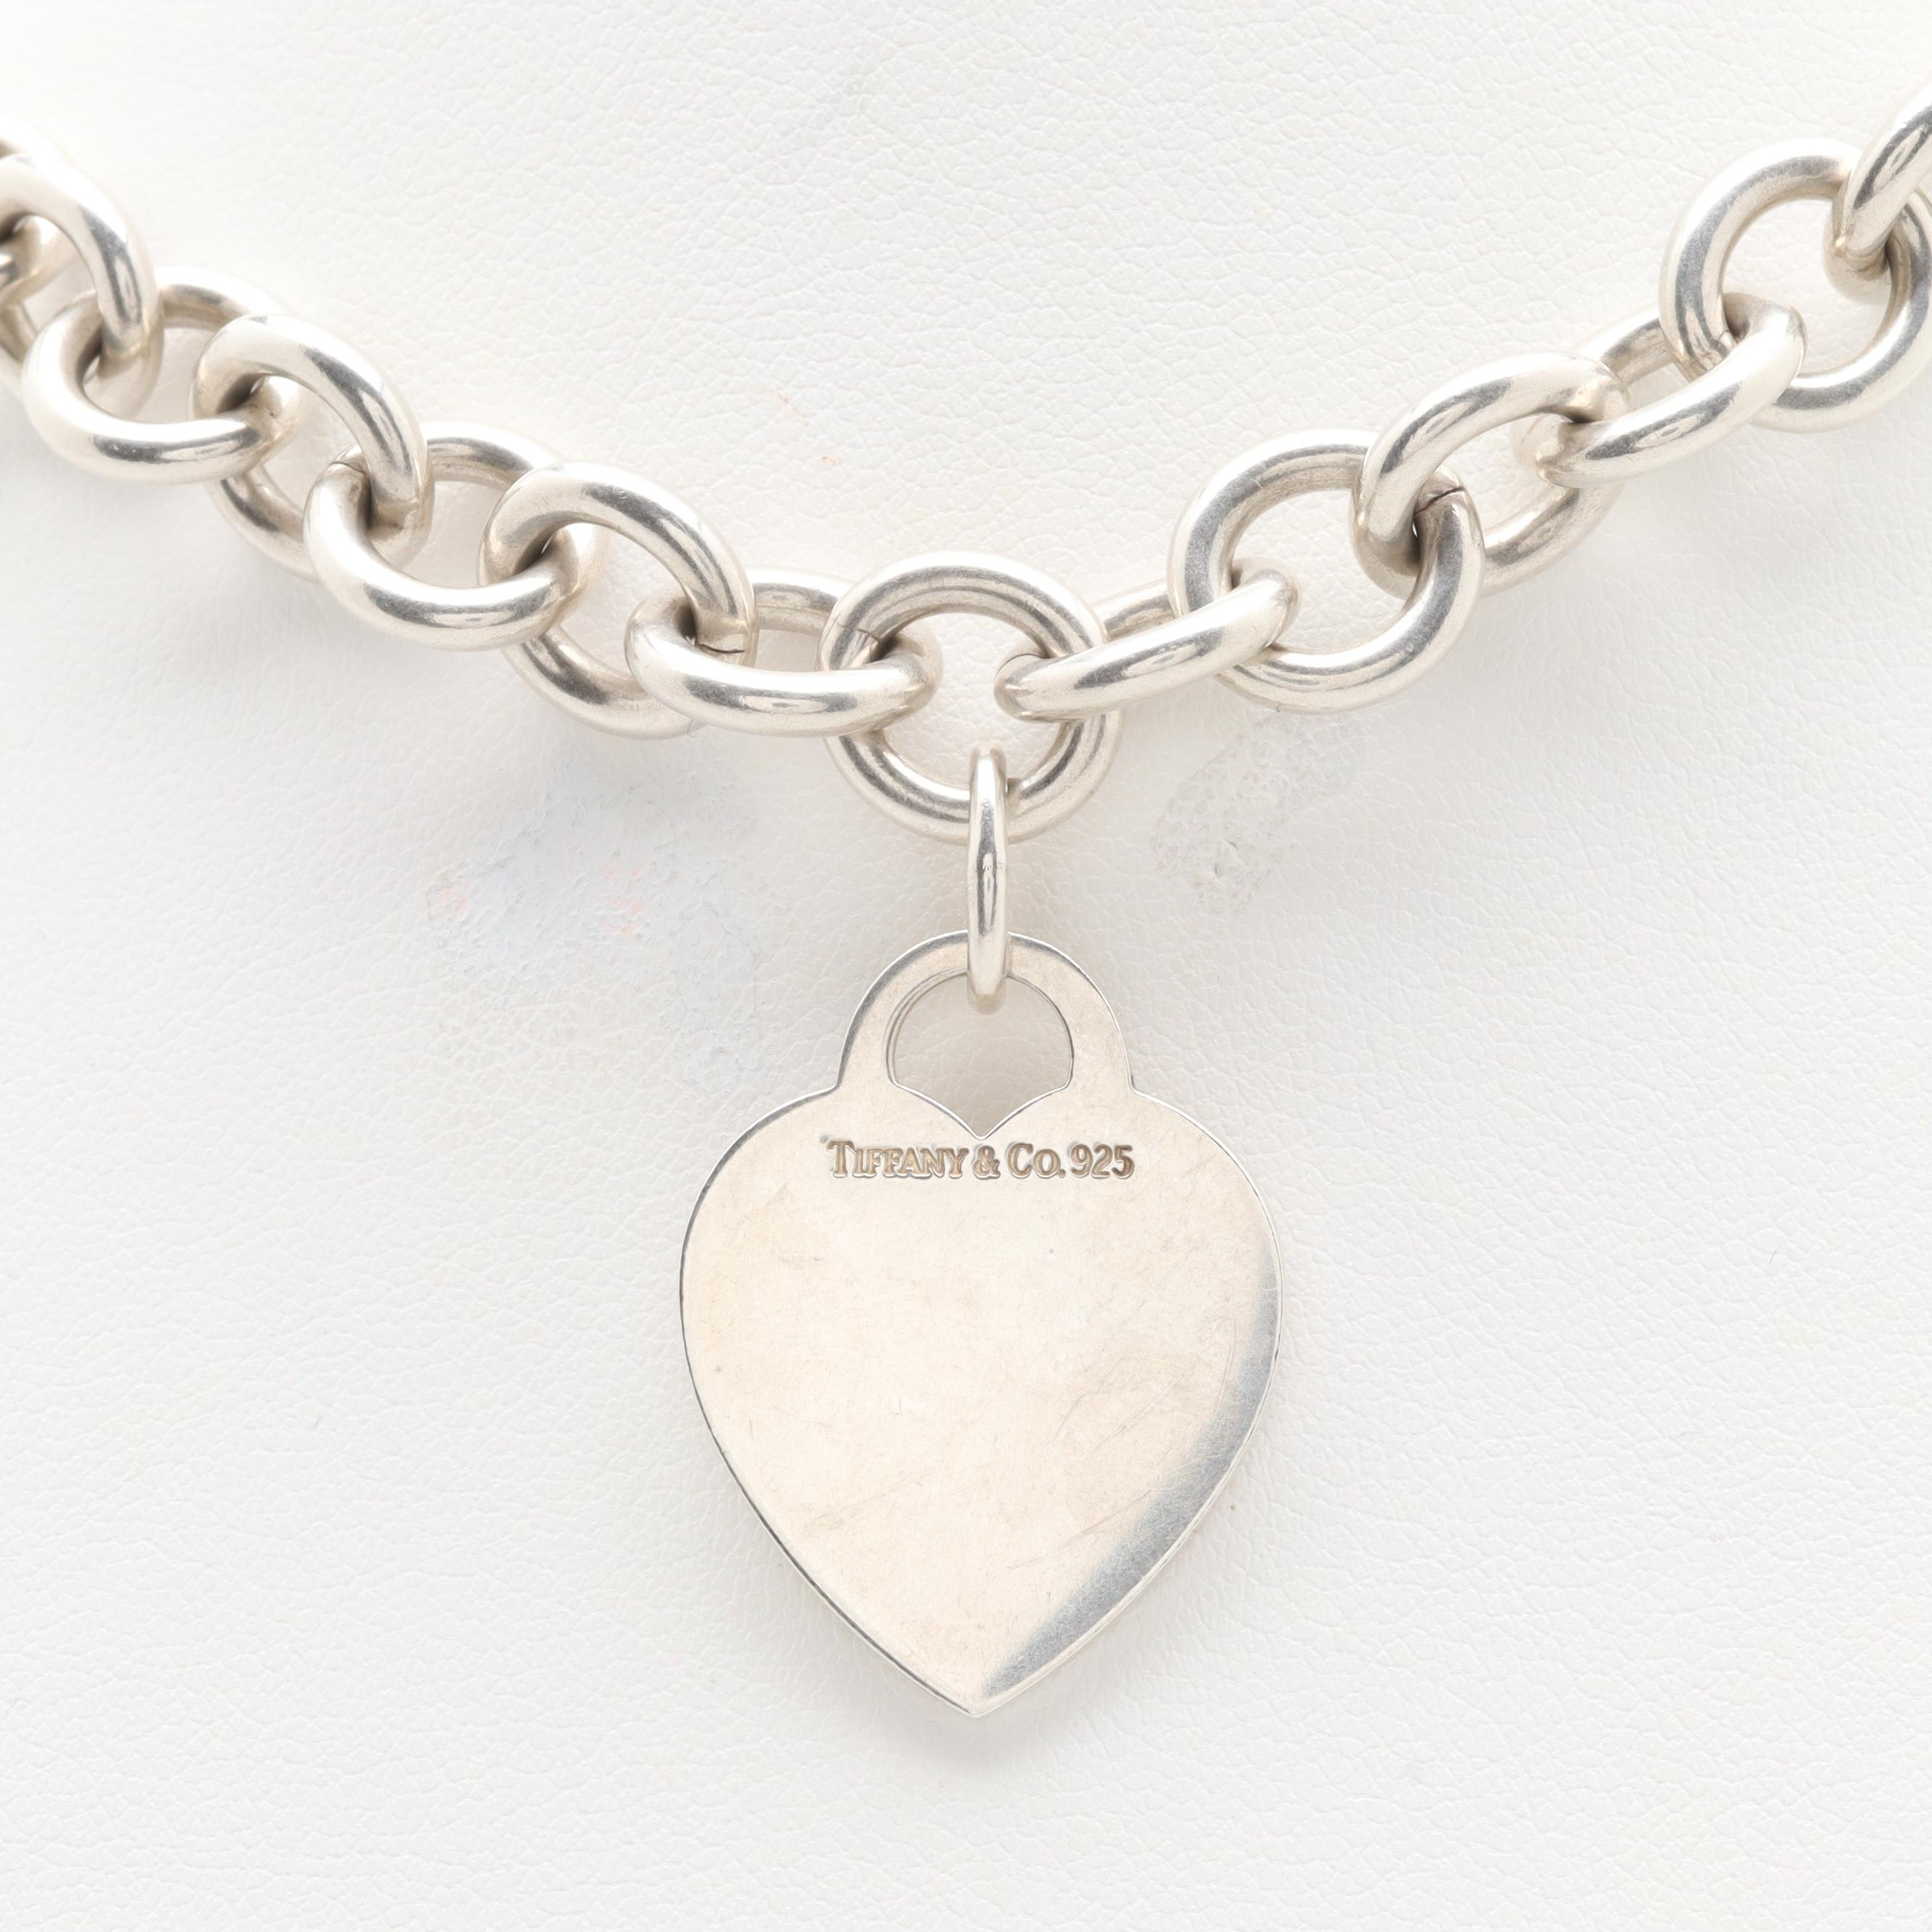 Tiffany & Co. Sterling Silver Necklace